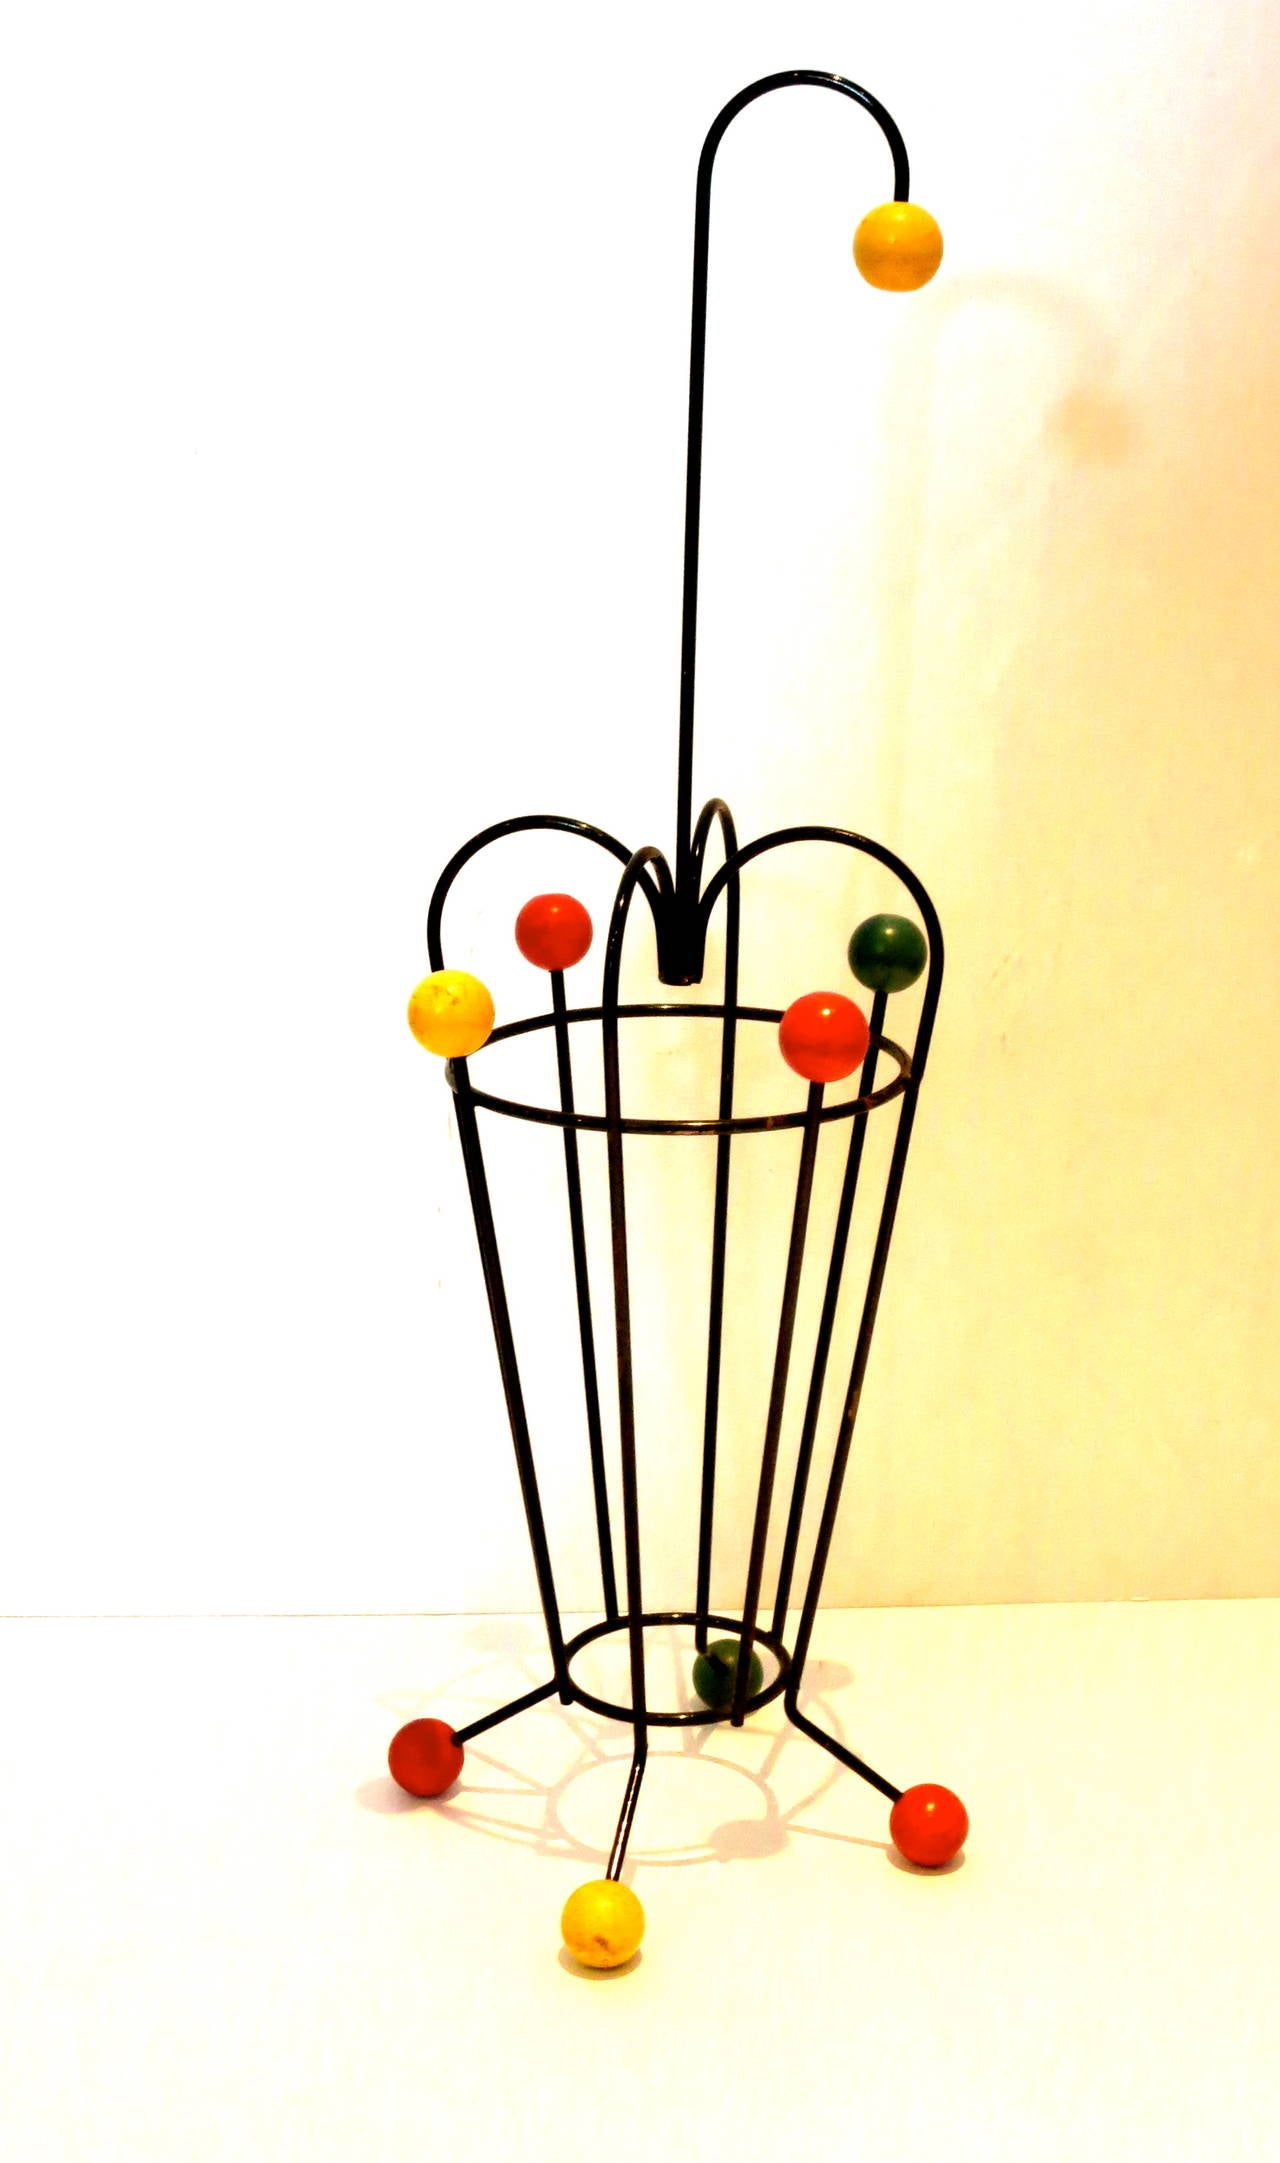 Mid-Century Modern 1950s Atomic Age French Mid-Century Umbrella Stand Iron and Wood For Sale